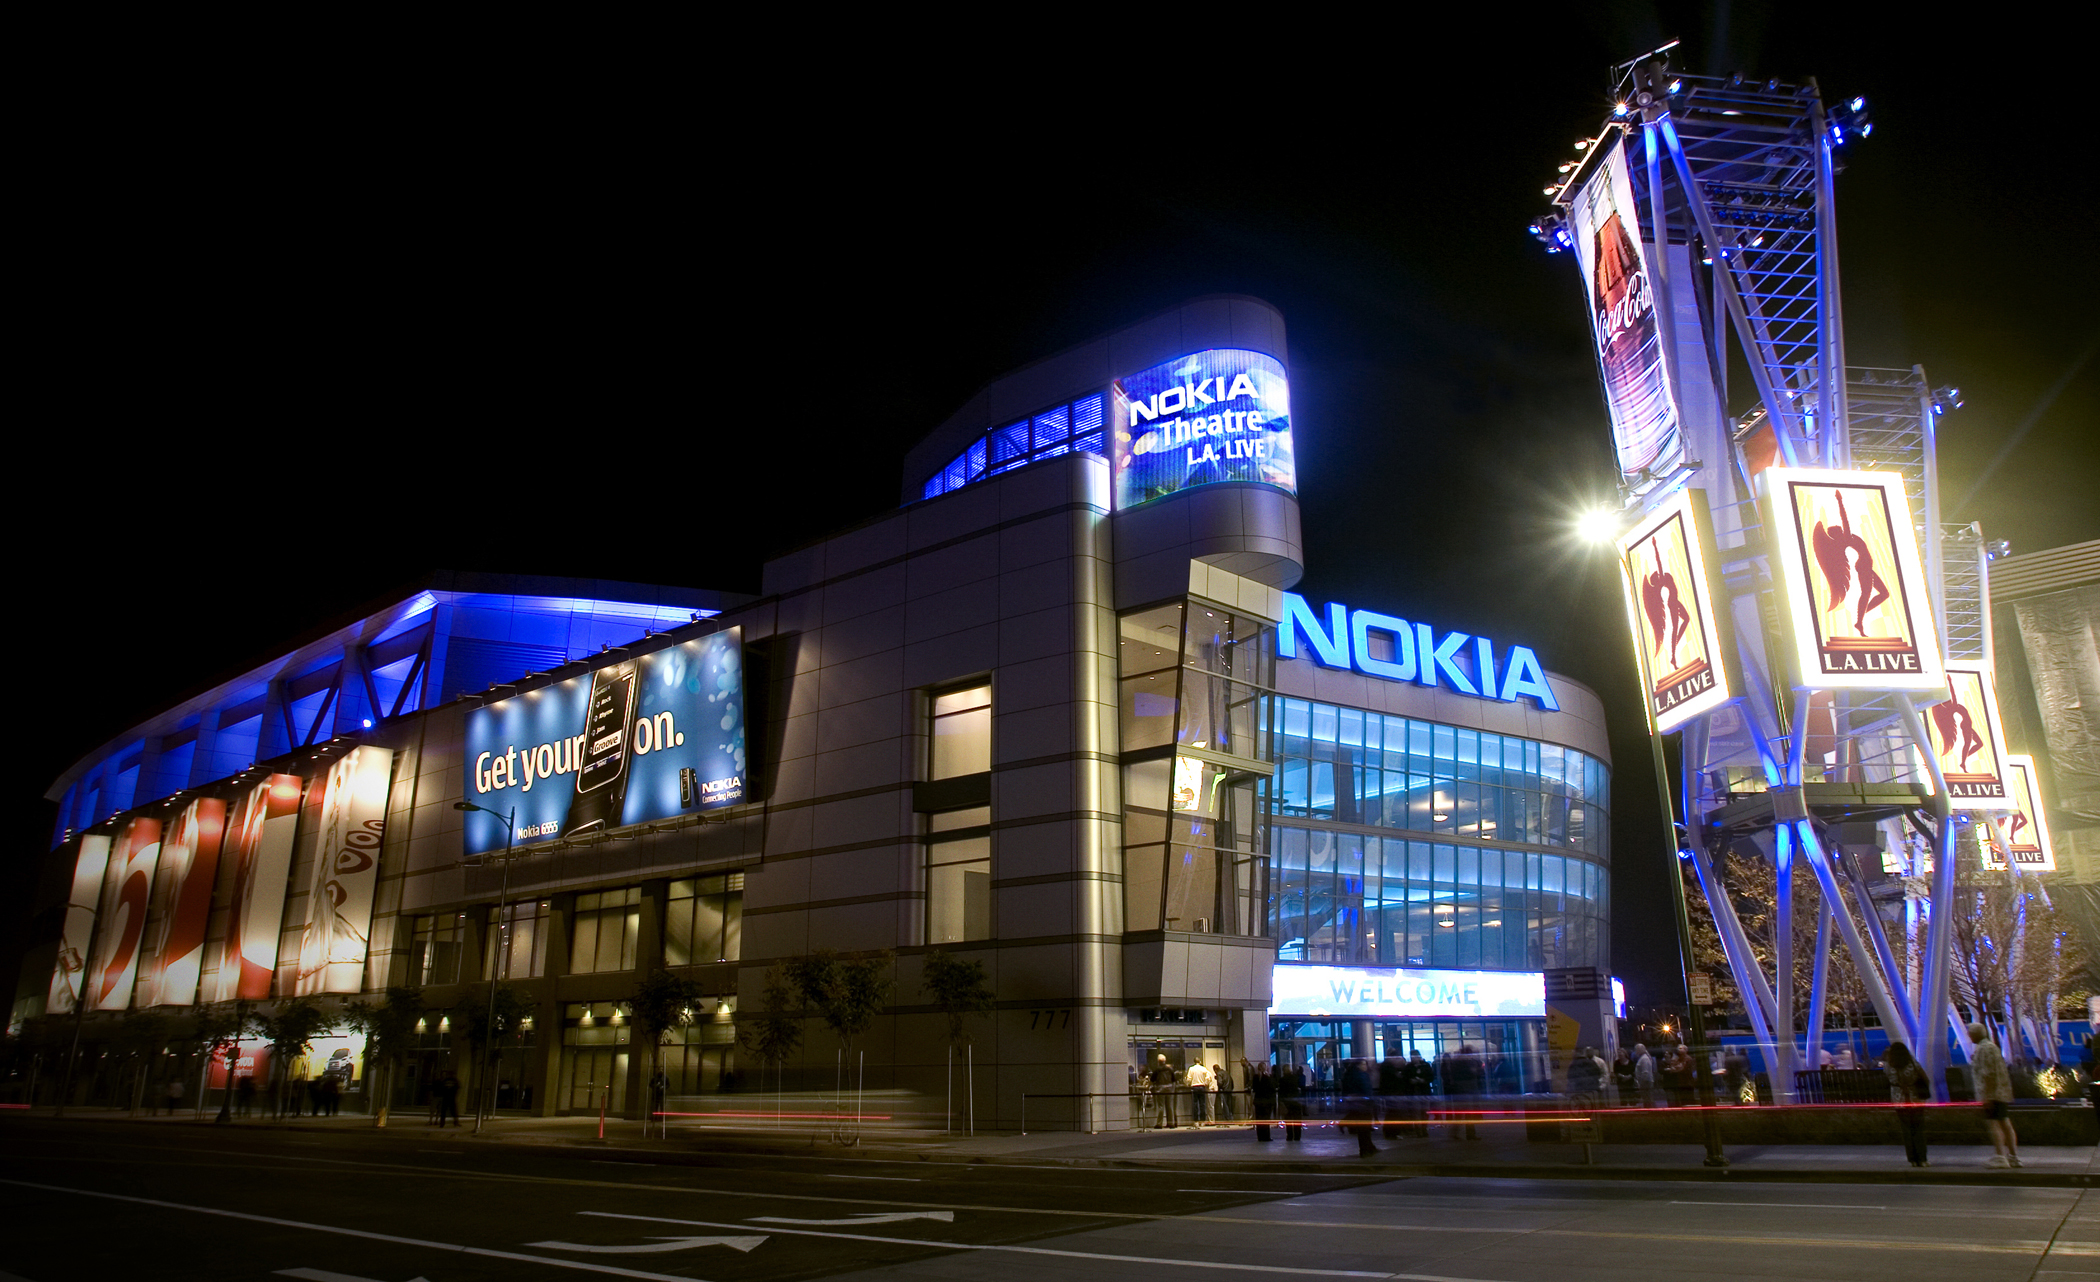 Samsung reportedly preparing to acquire Nokia